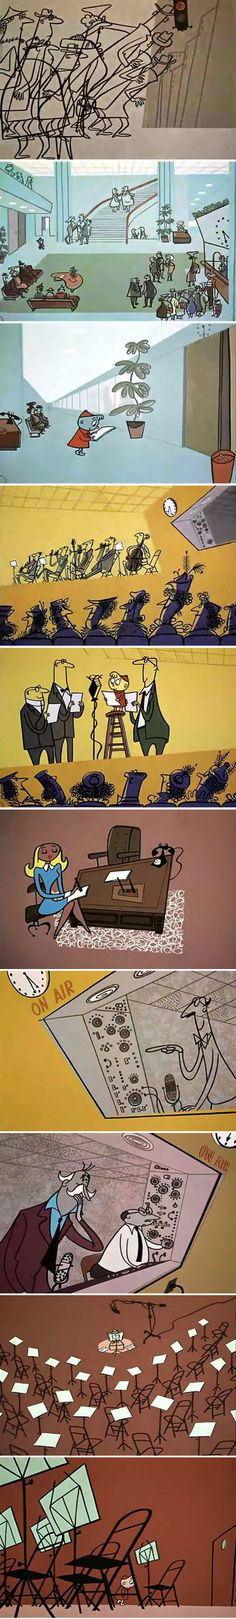 Stills from Gerald McBoing Boing's Symphony (UPA, 1953)